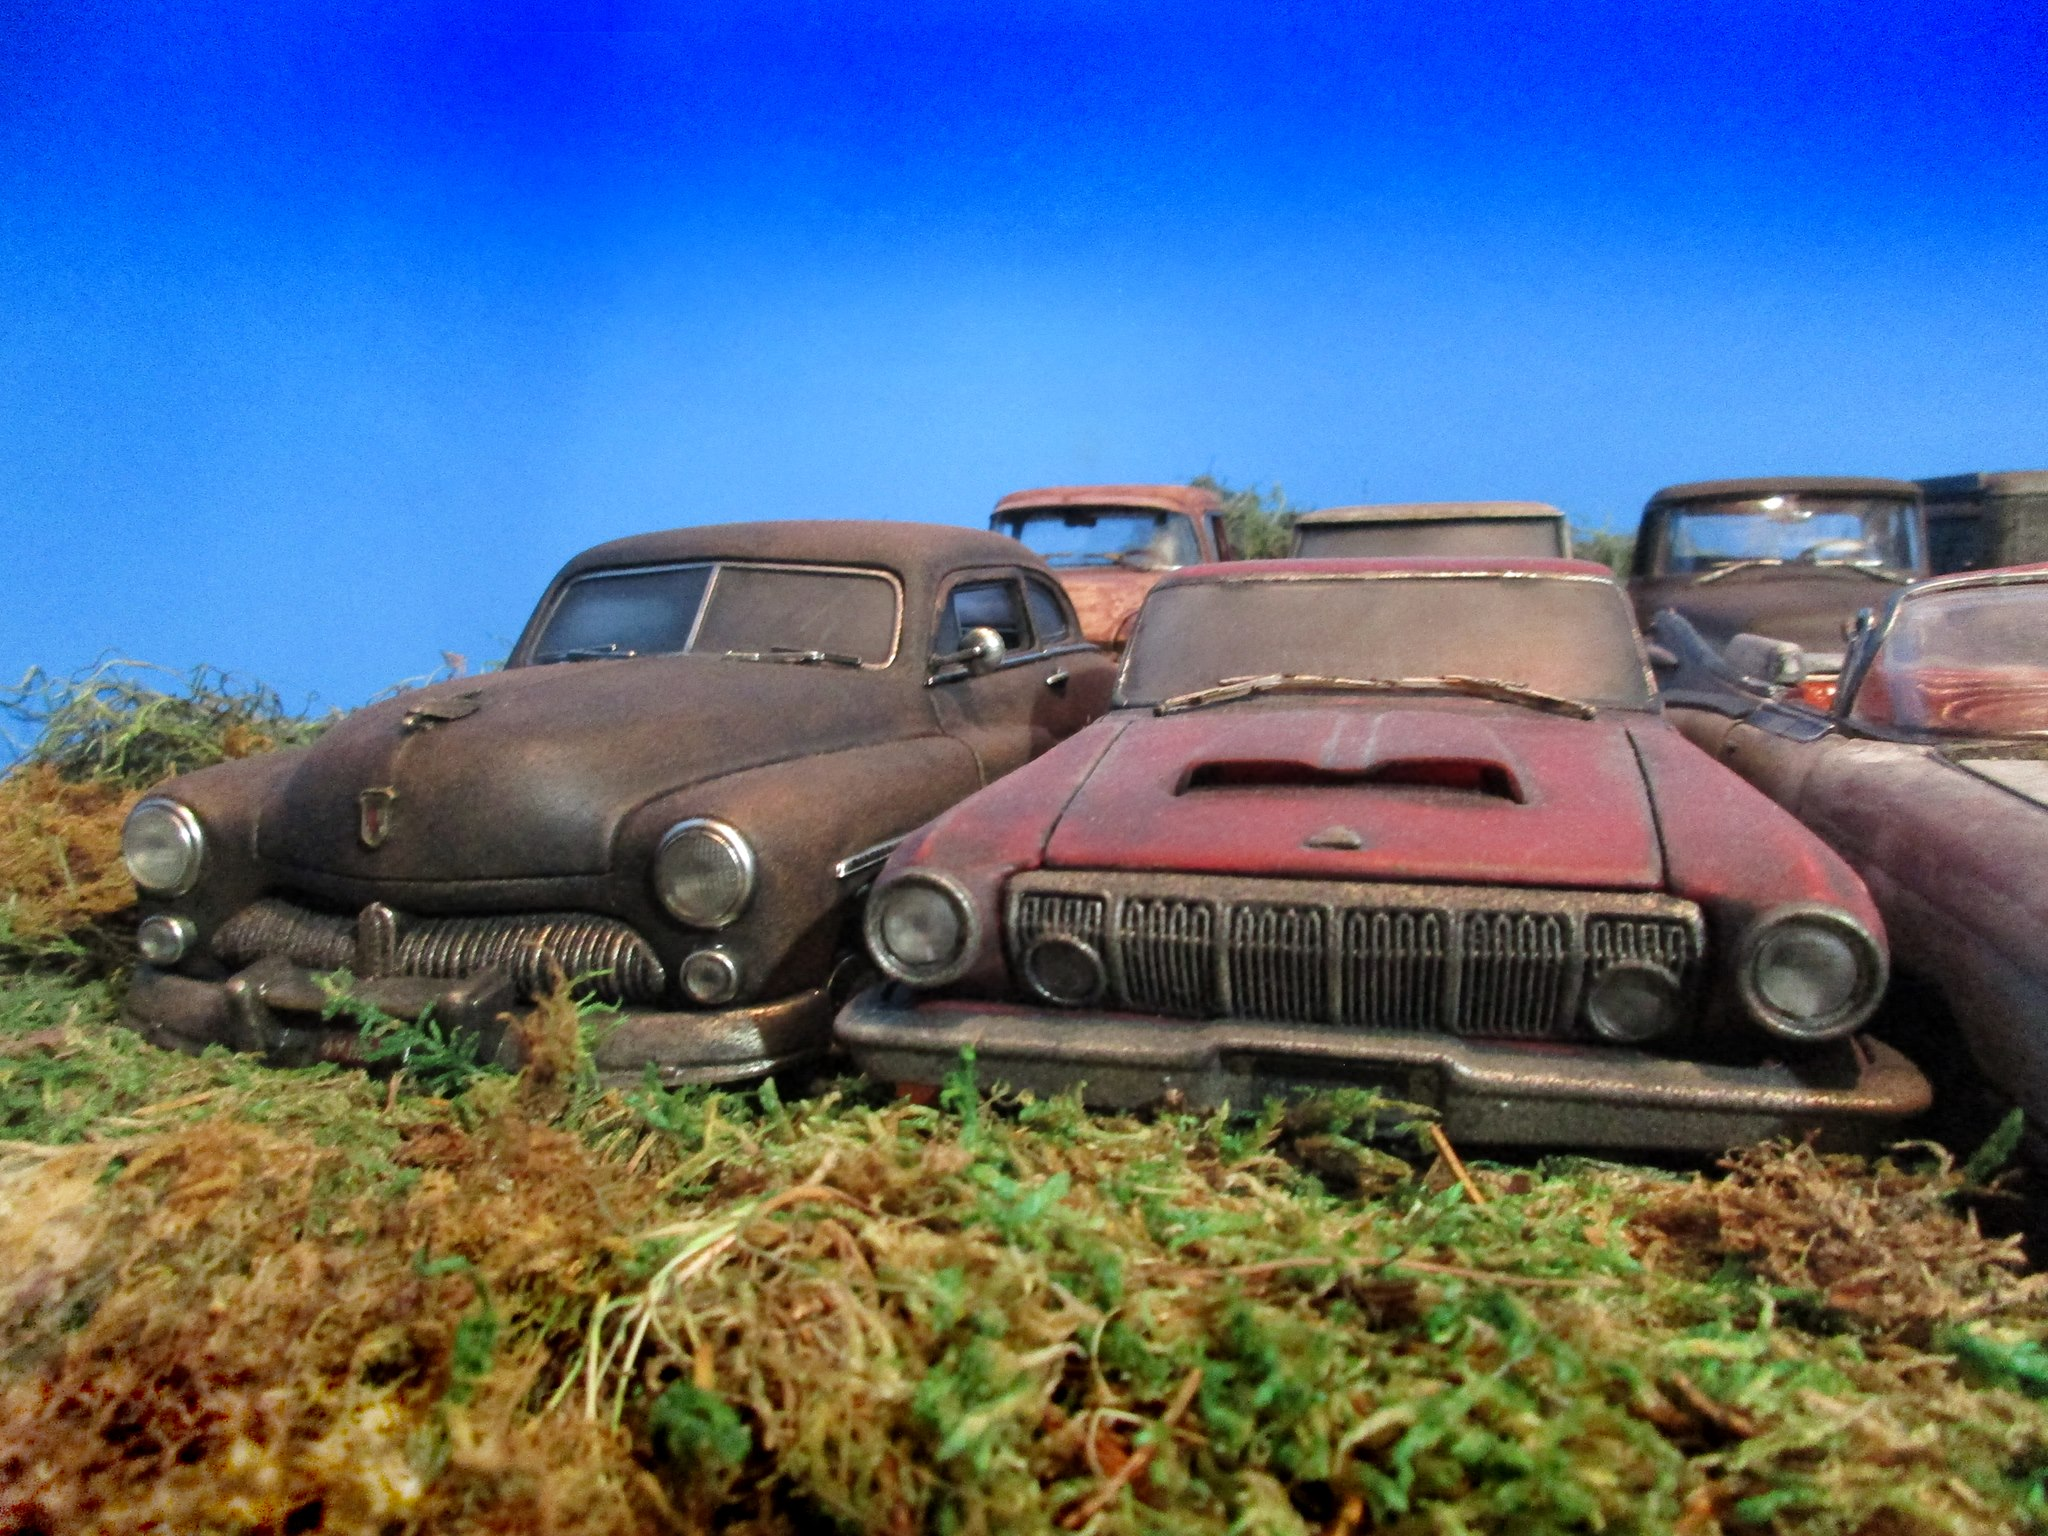 Toasted---Autos-Weathered-Die-Cast-Cars-5